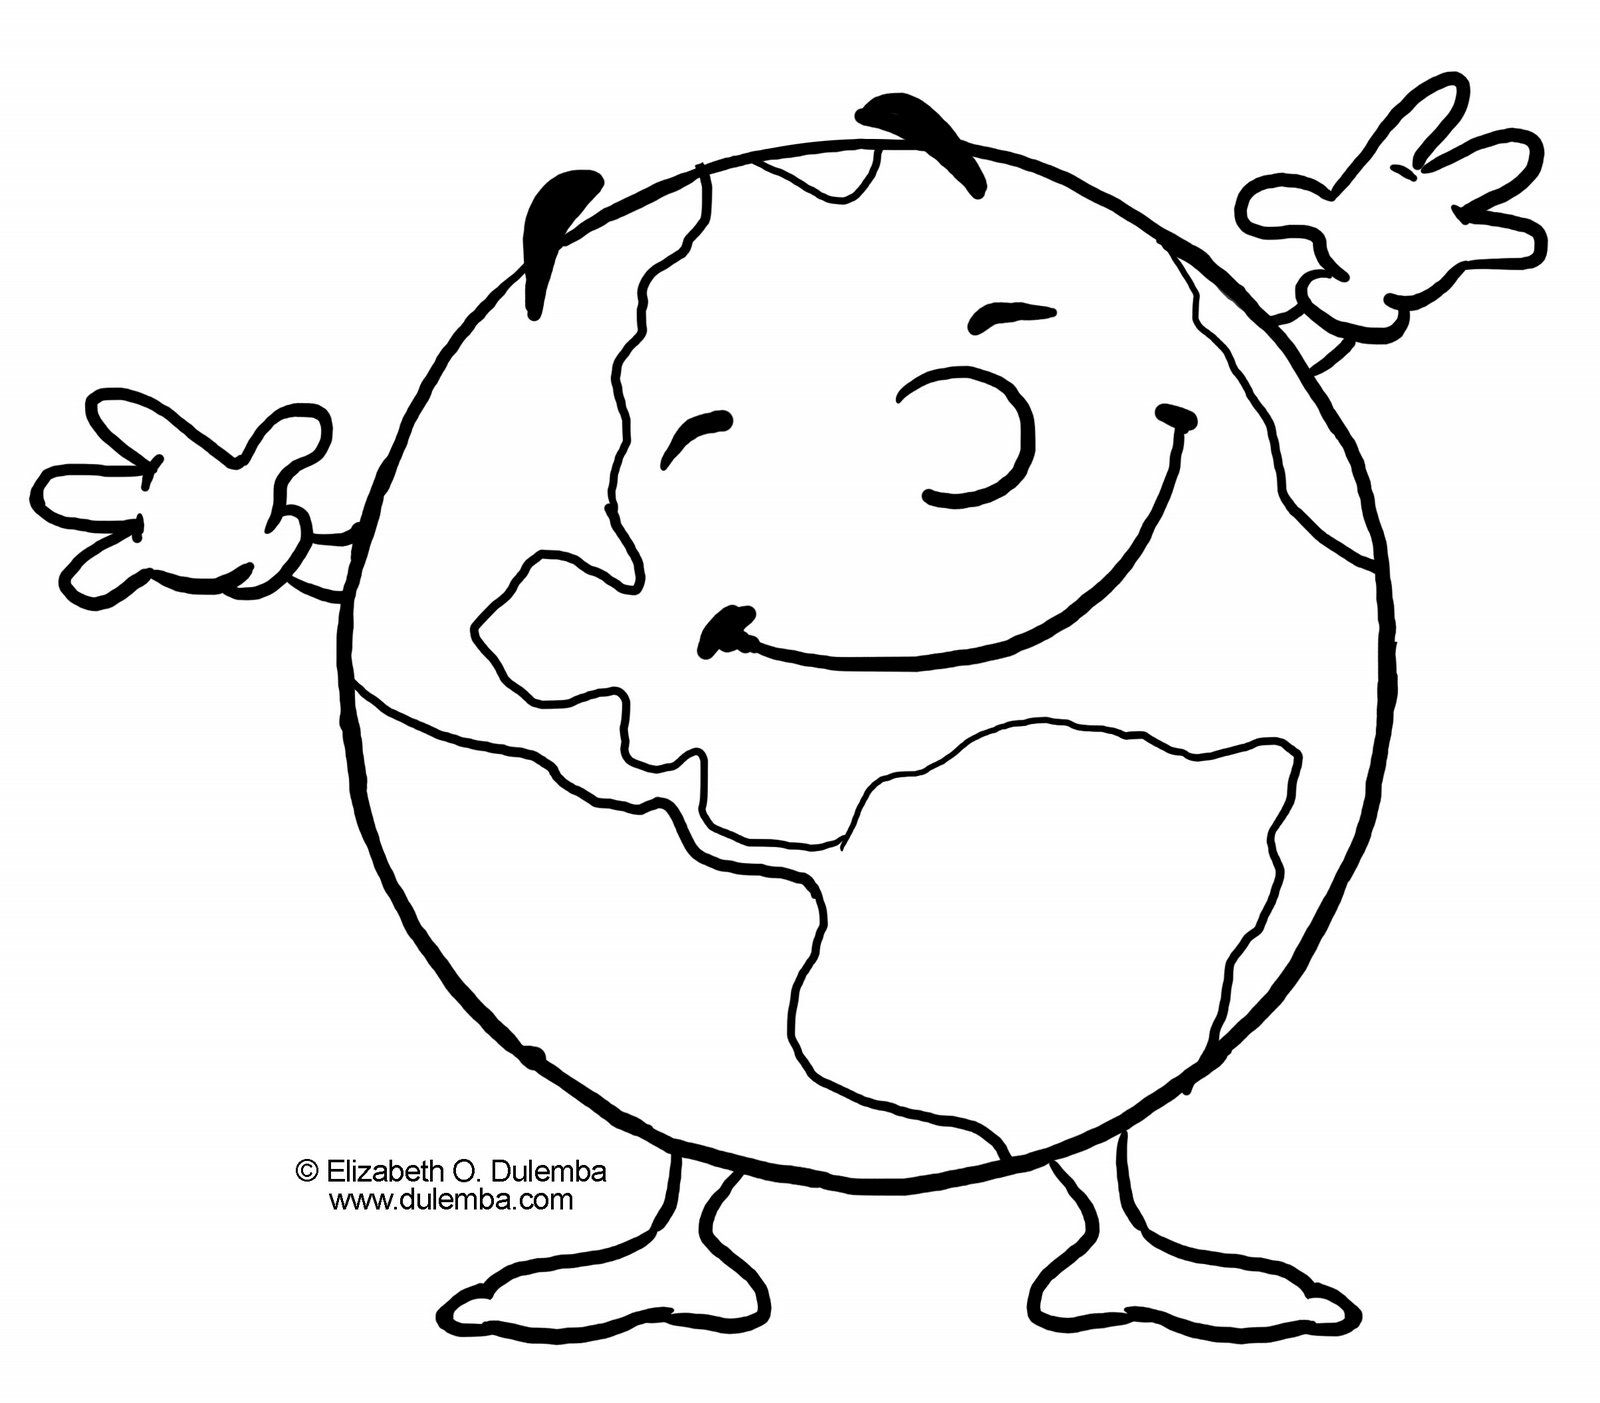 Free coloring pages for earth day - Earth Coloring Pages To Print Enjoy Coloring